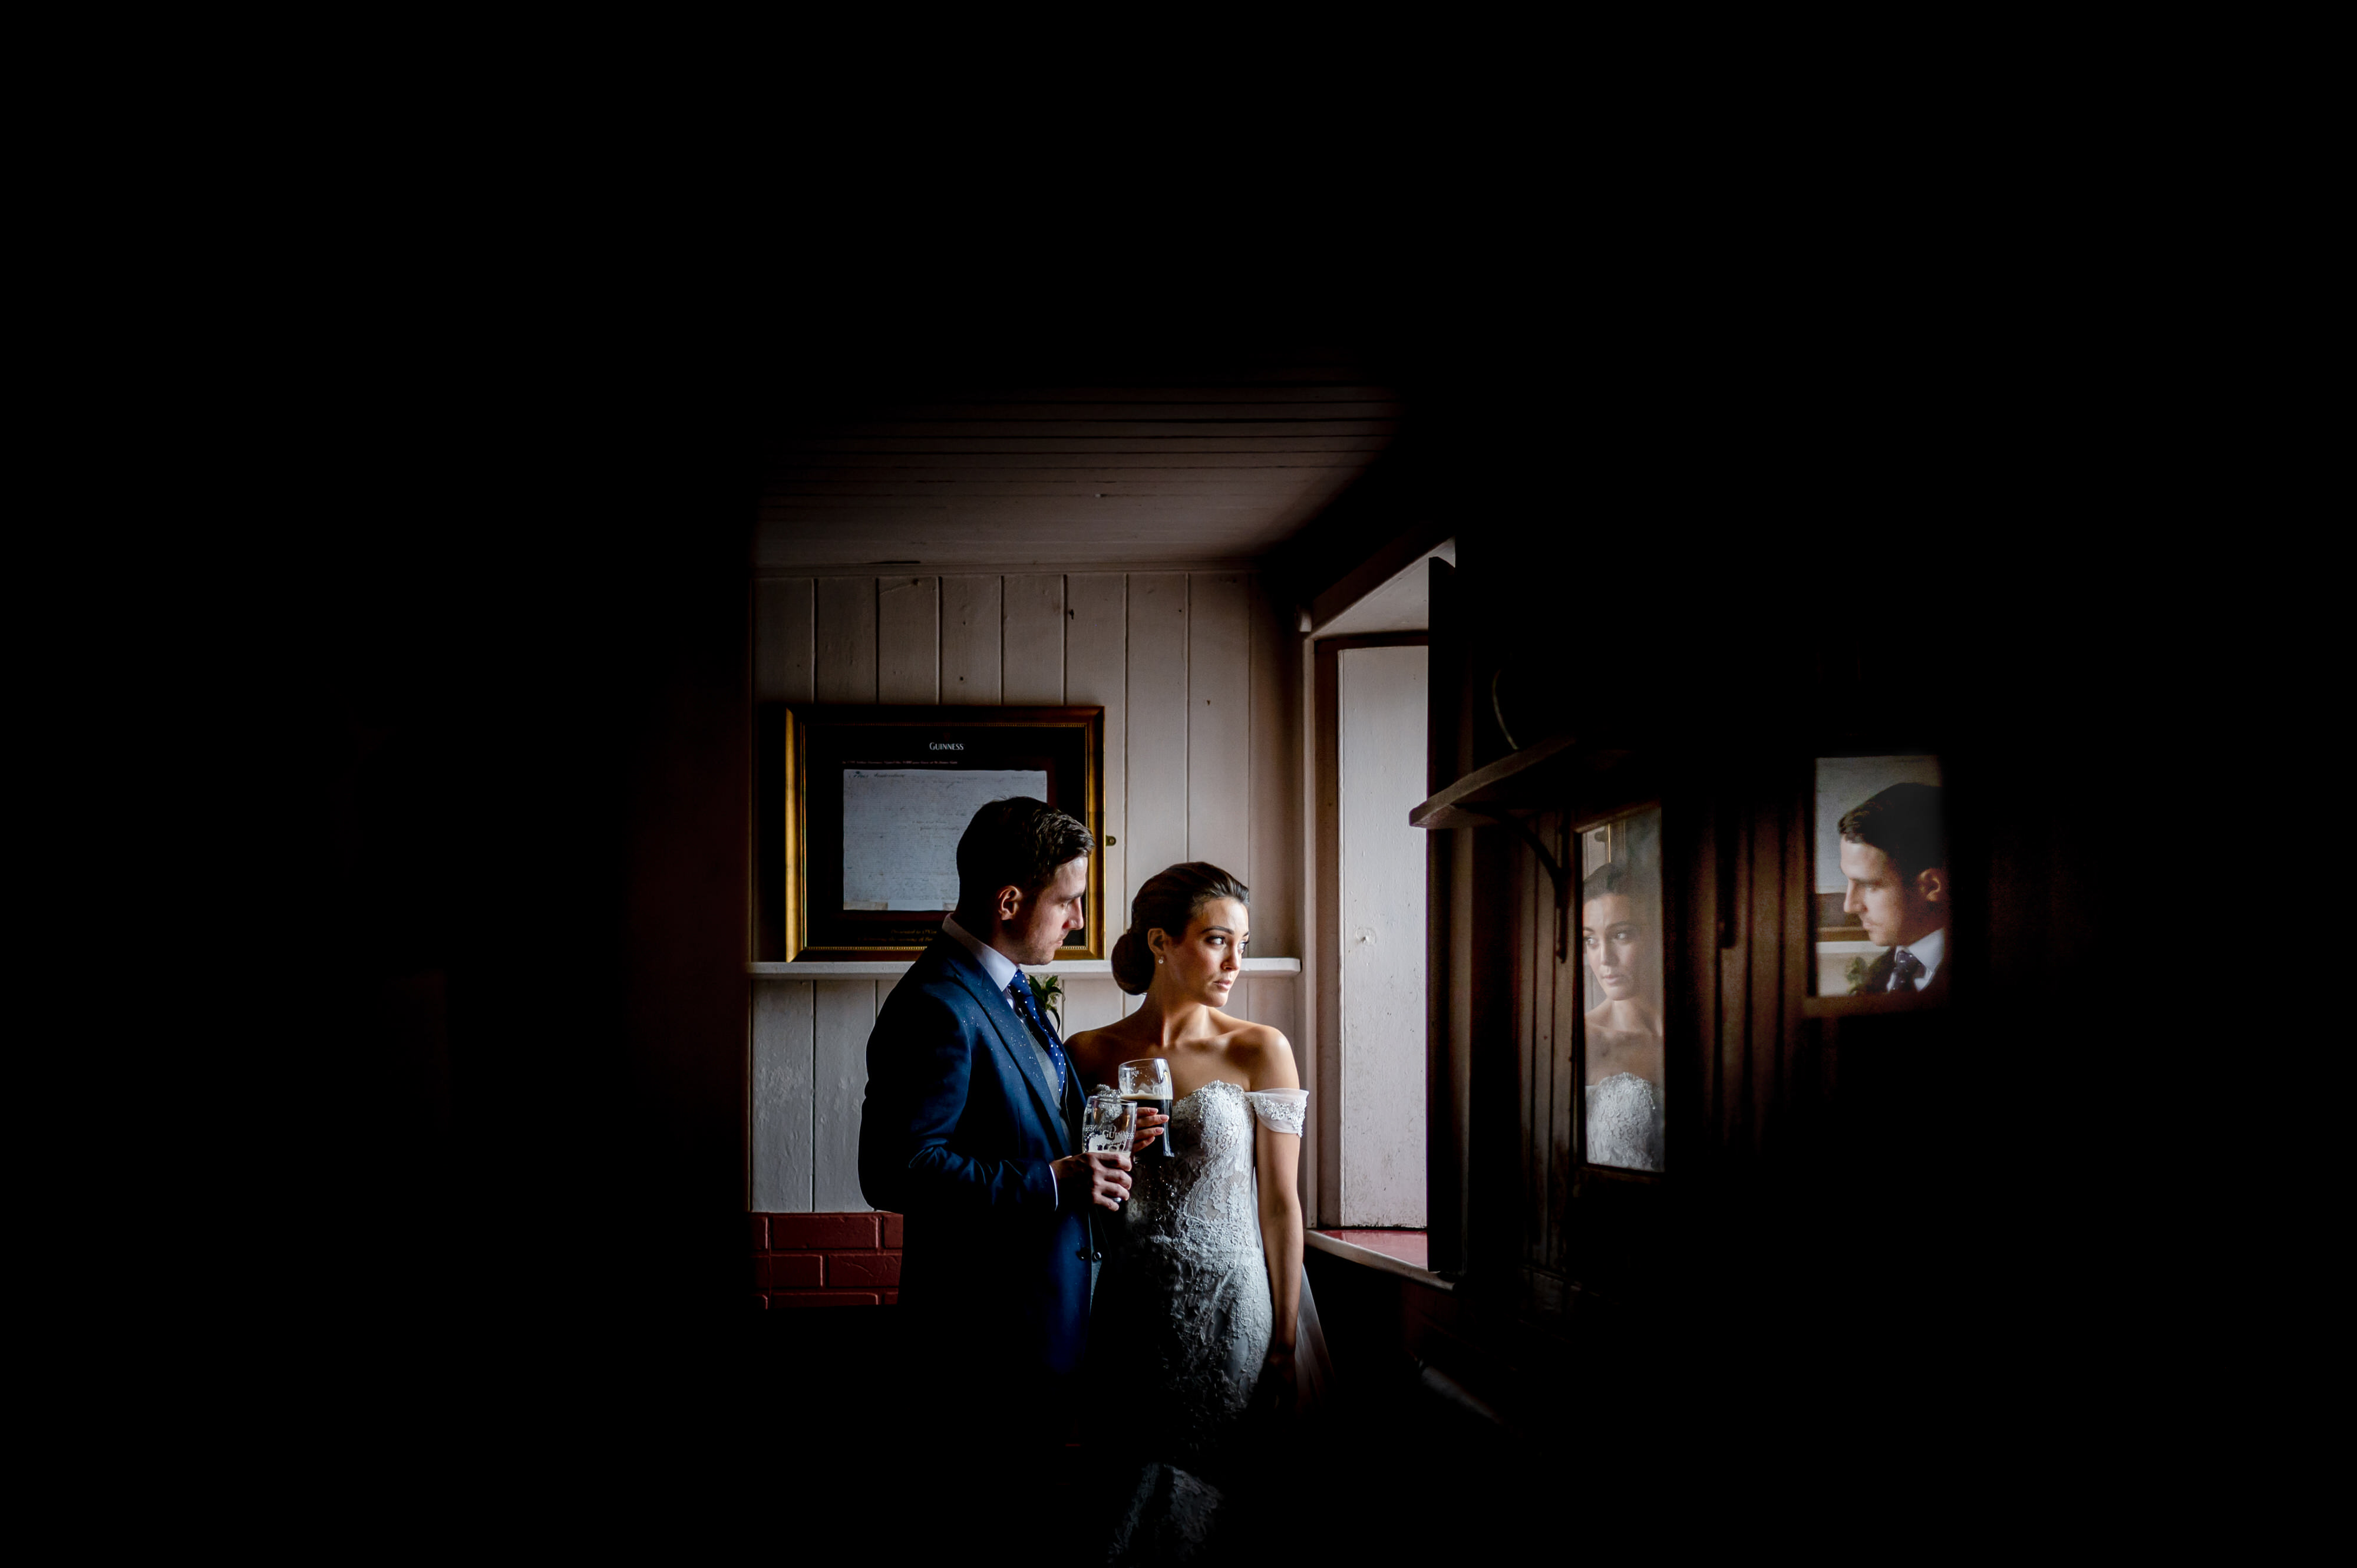 Bride and groom reflected in two mirrors - John Gillooley - Ireland